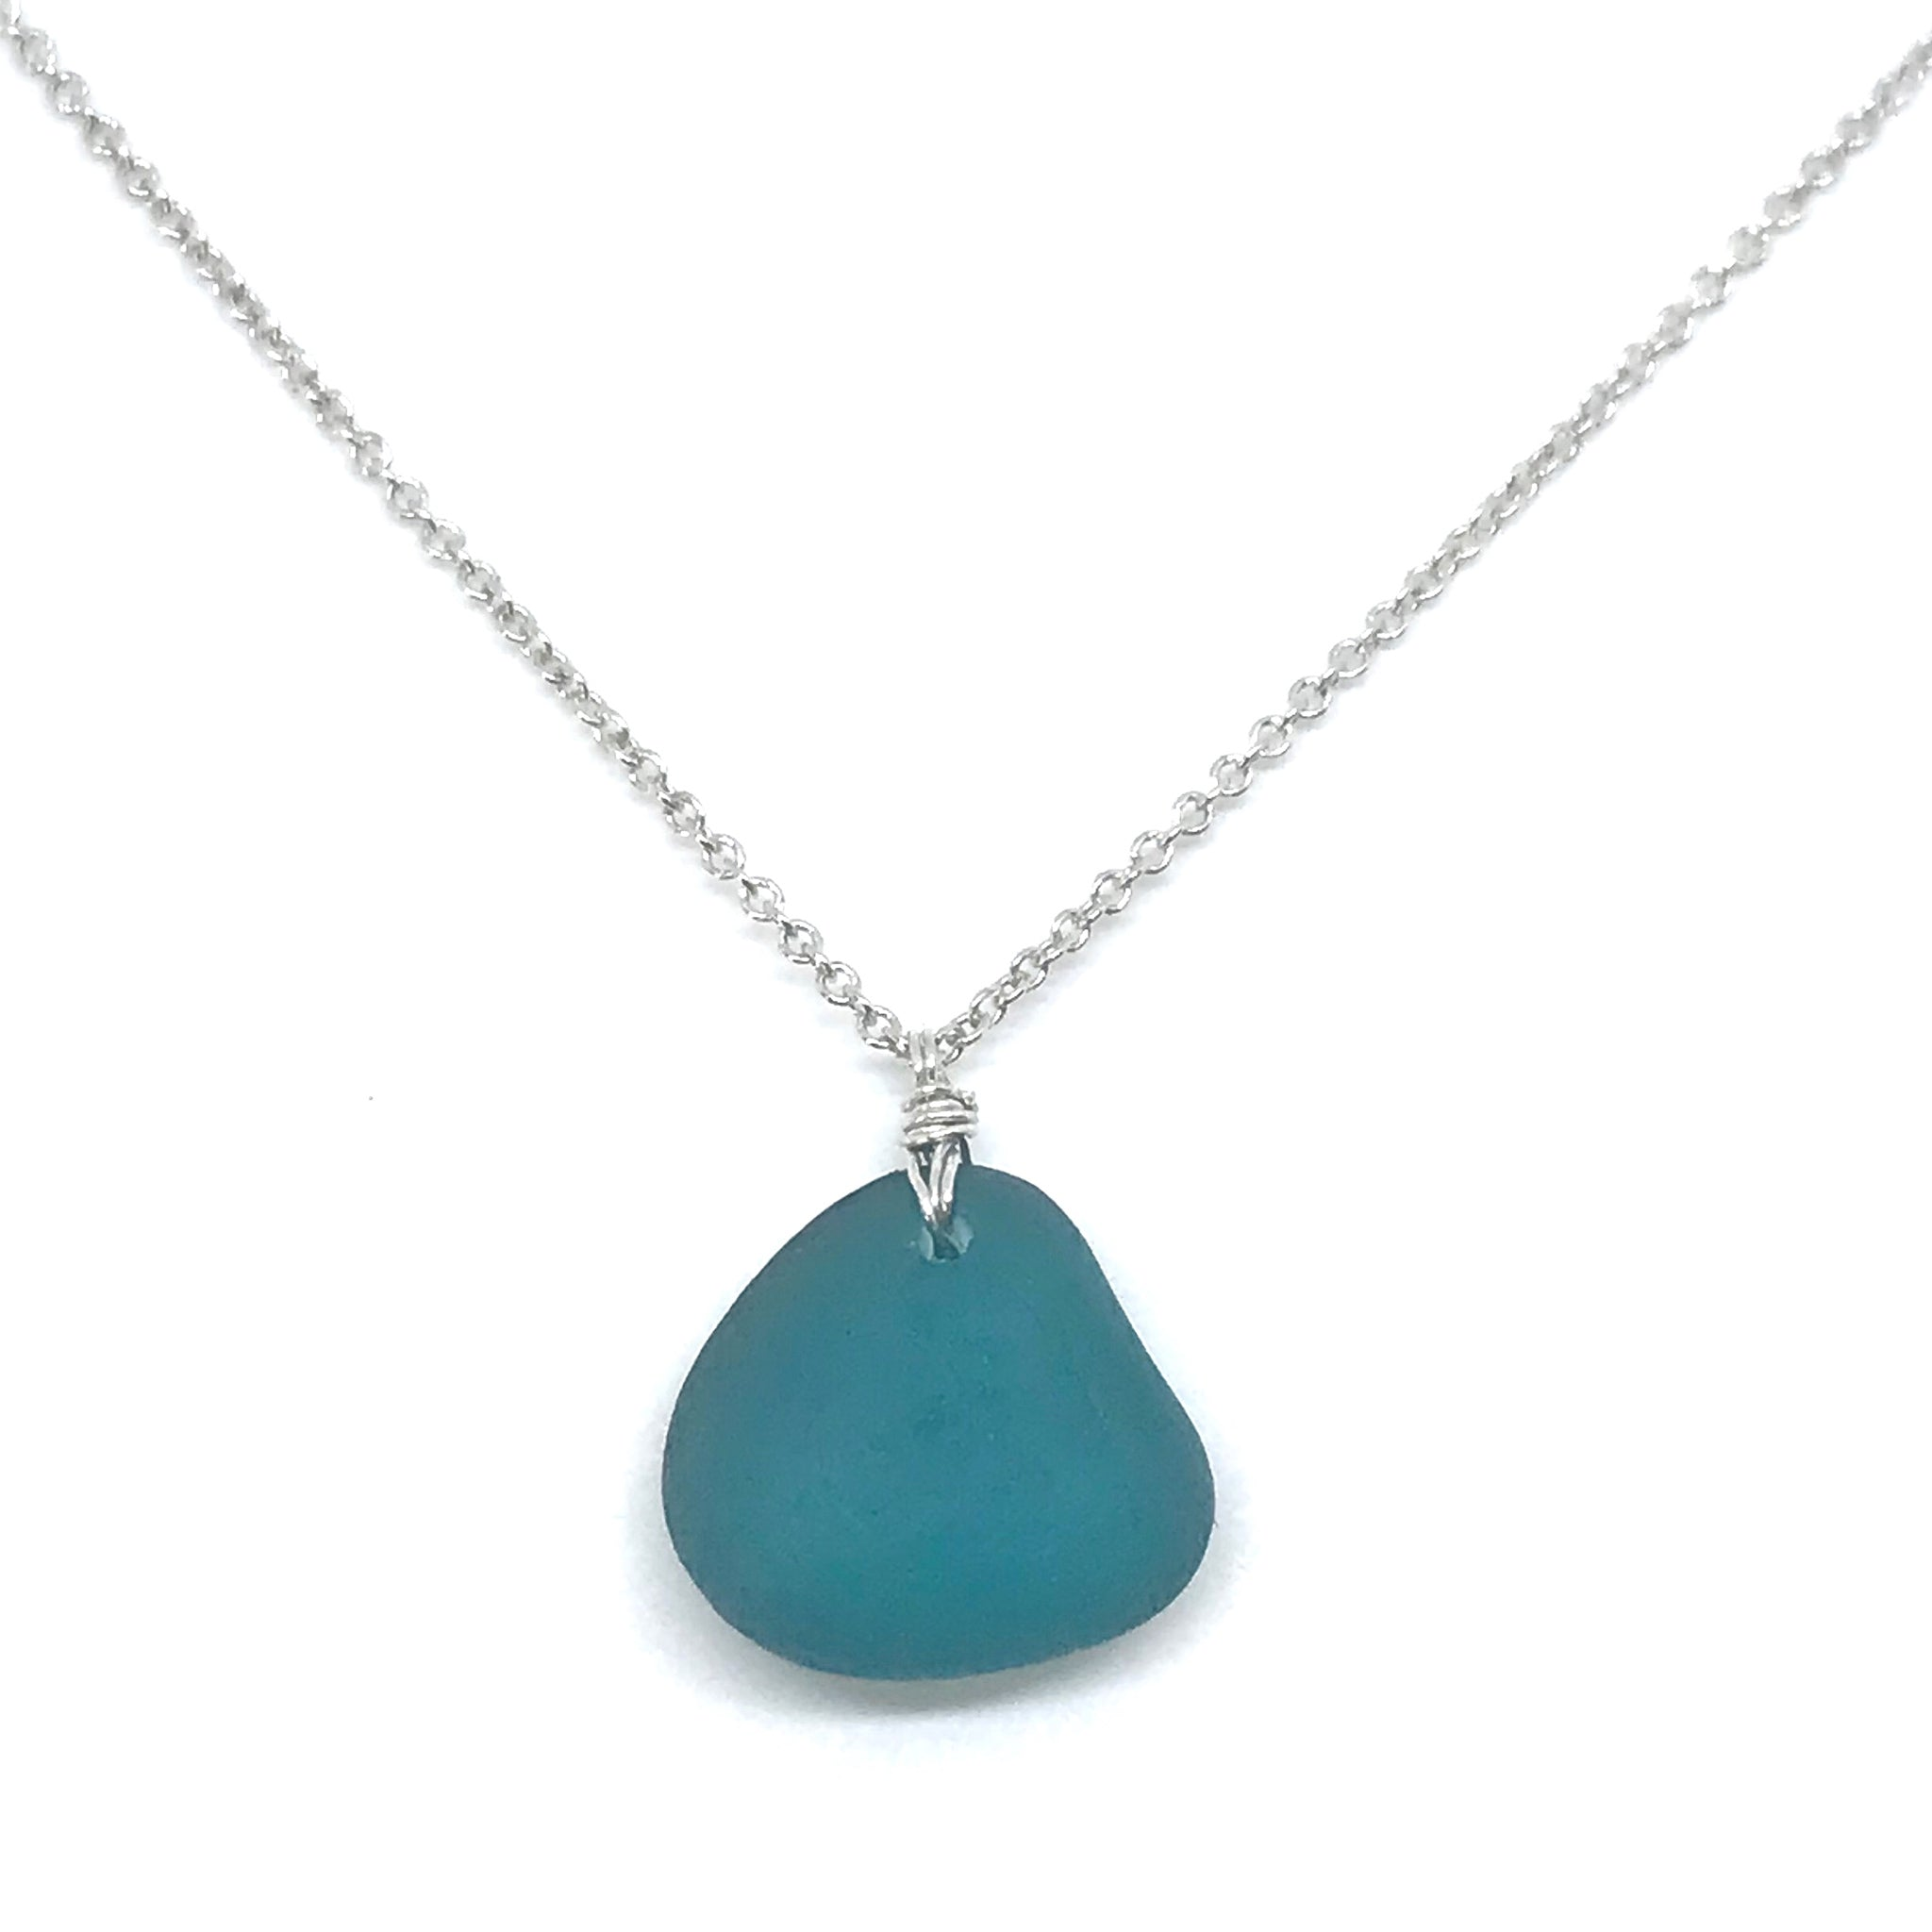 Teal Seaglass Necklace on Short Sterling Silver Chain - kriket broadhurst jewellery Sydney